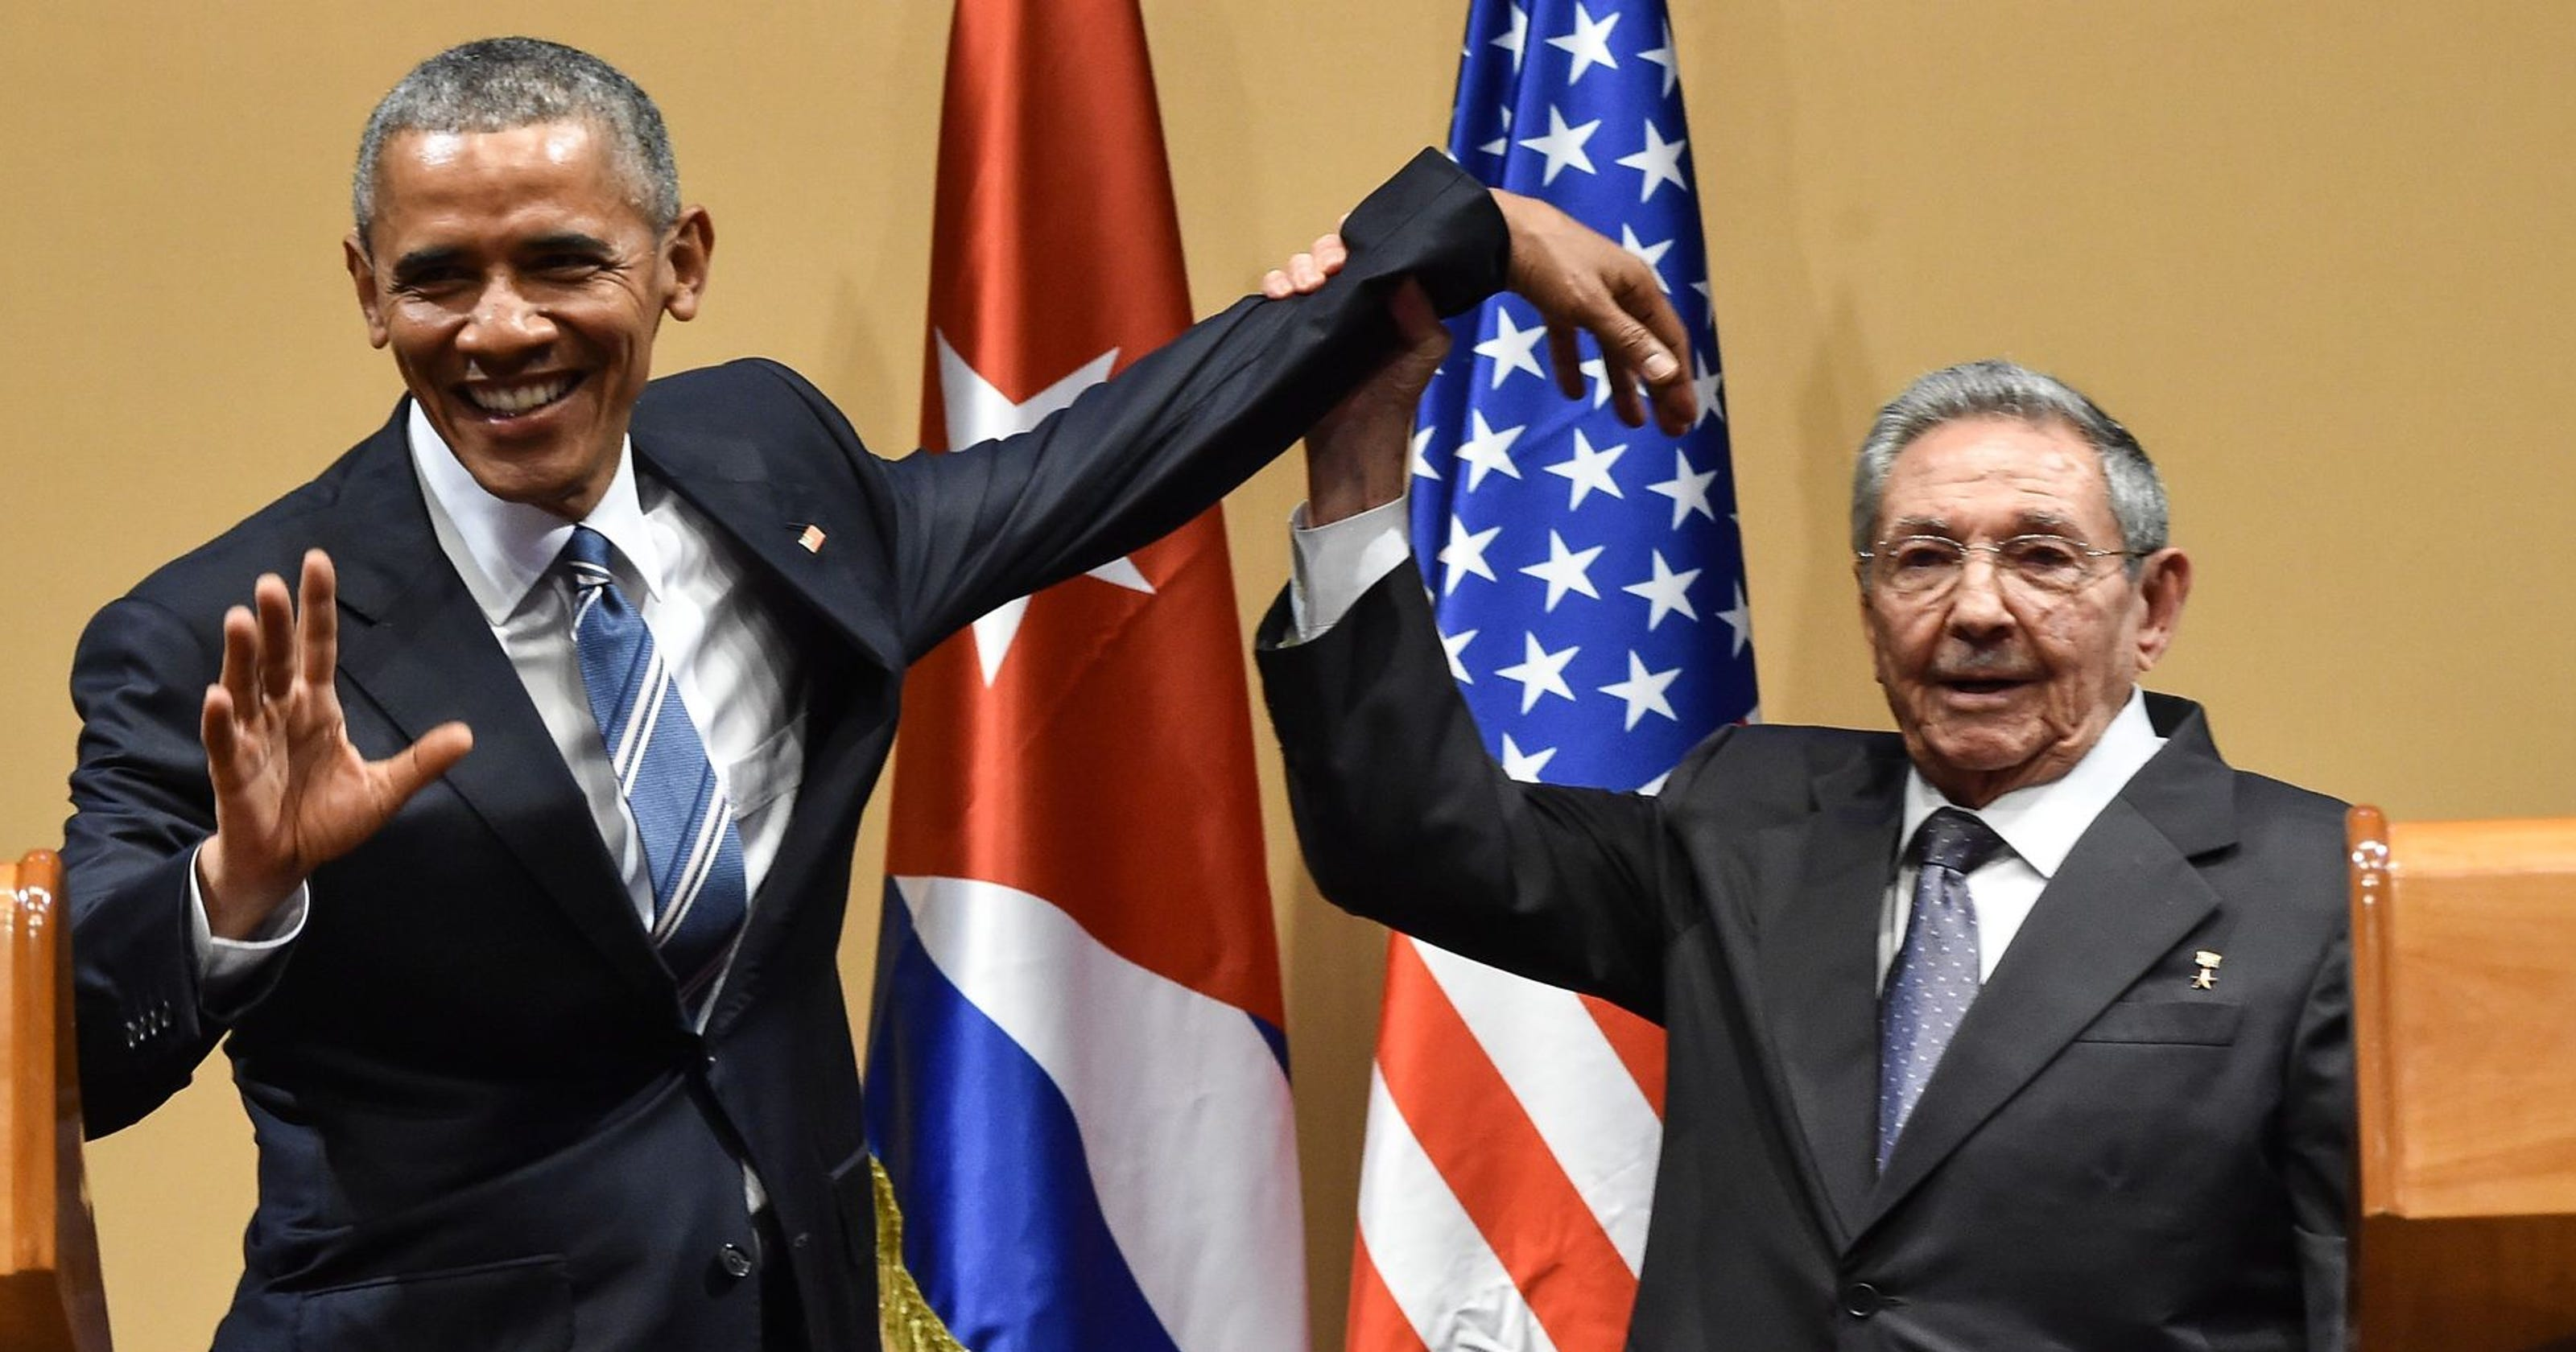 Image result for obama with castro